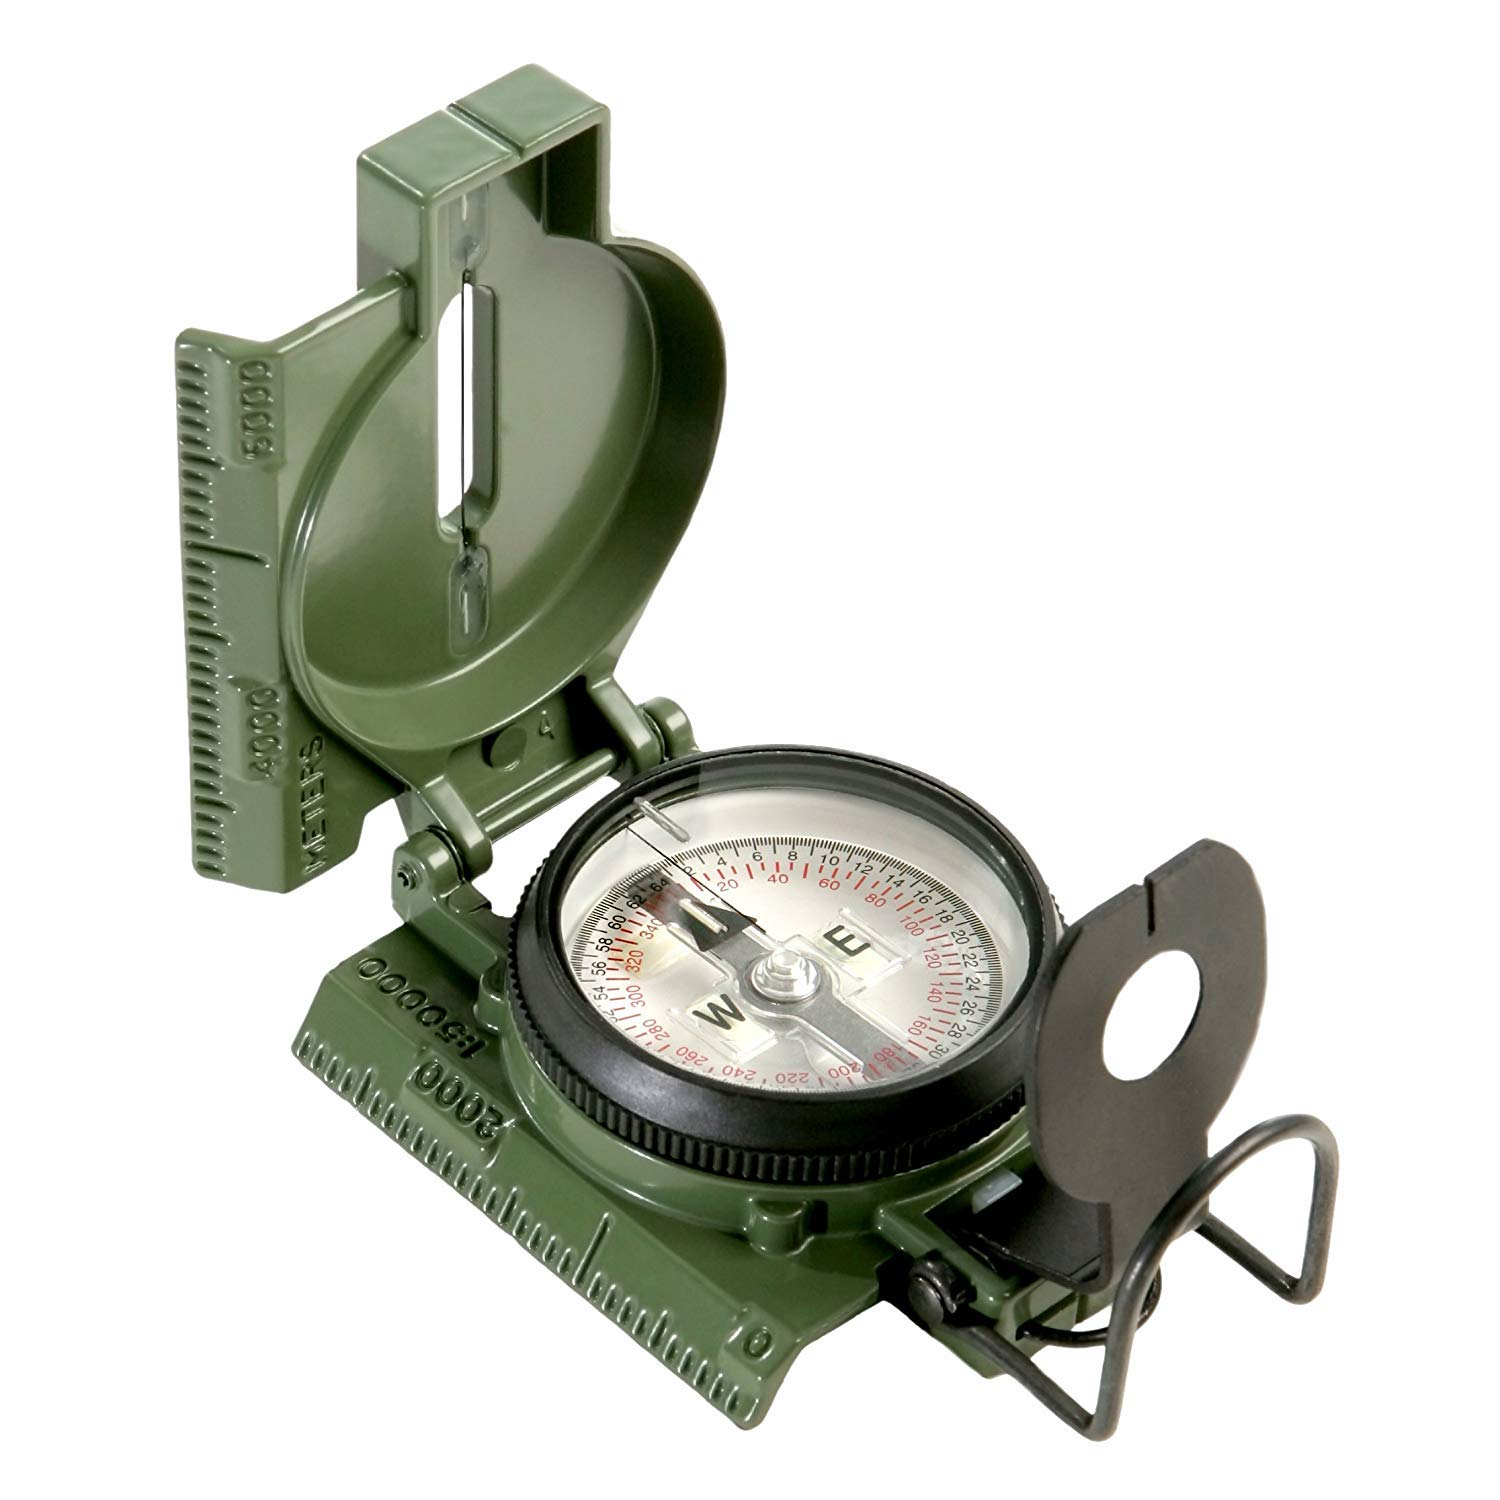 Cammenga Official US Miltary Tritium Lensatic Compass, Clam Pack (2-Units)